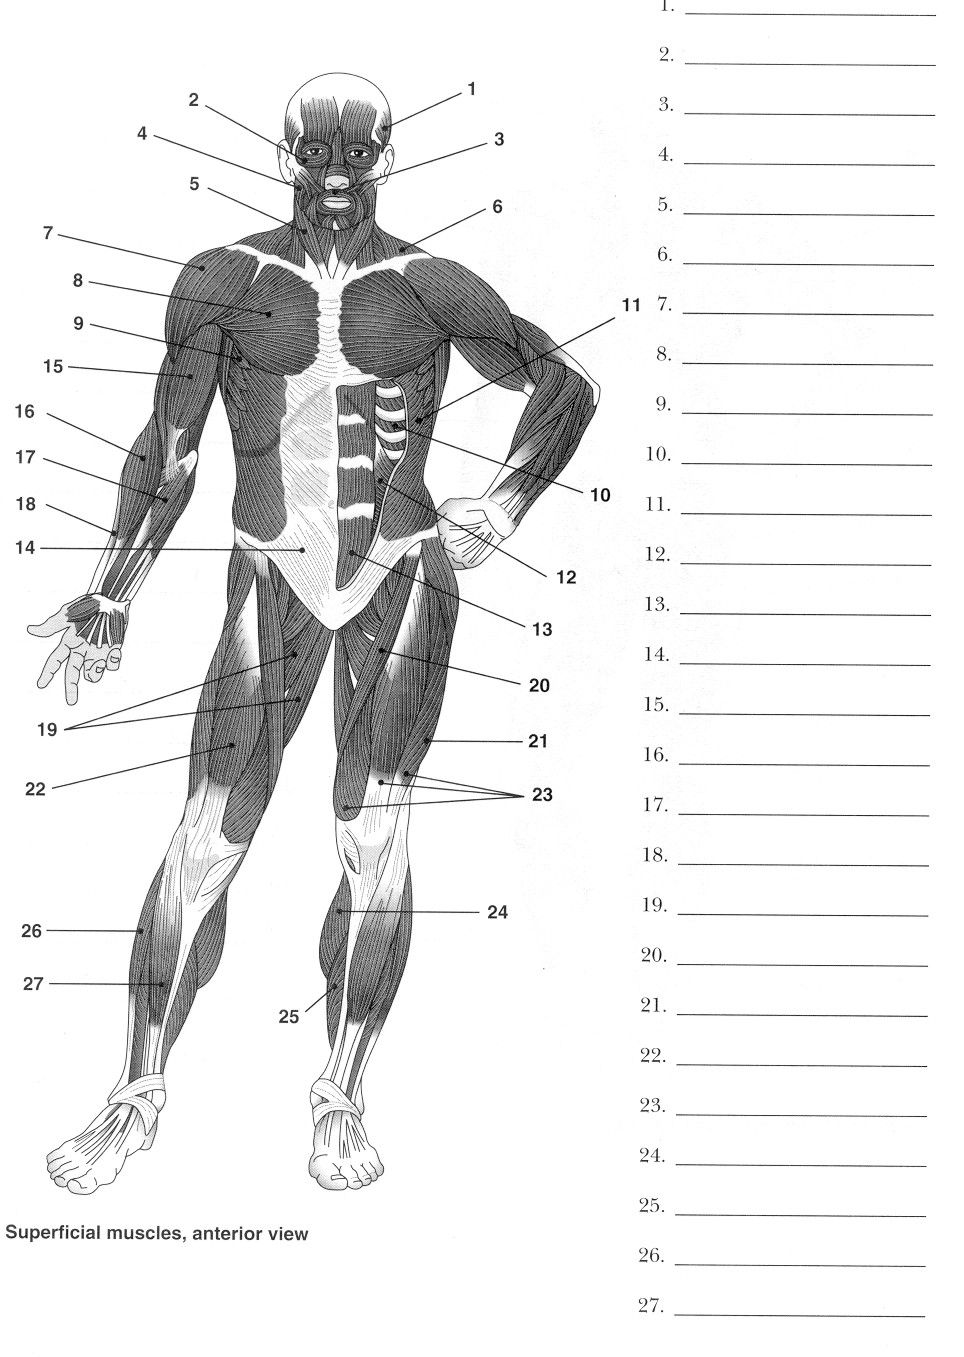 Worksheets Muscle Labeling Worksheet muscle anatomy printable diagram worksheet the largest and most comprehensive